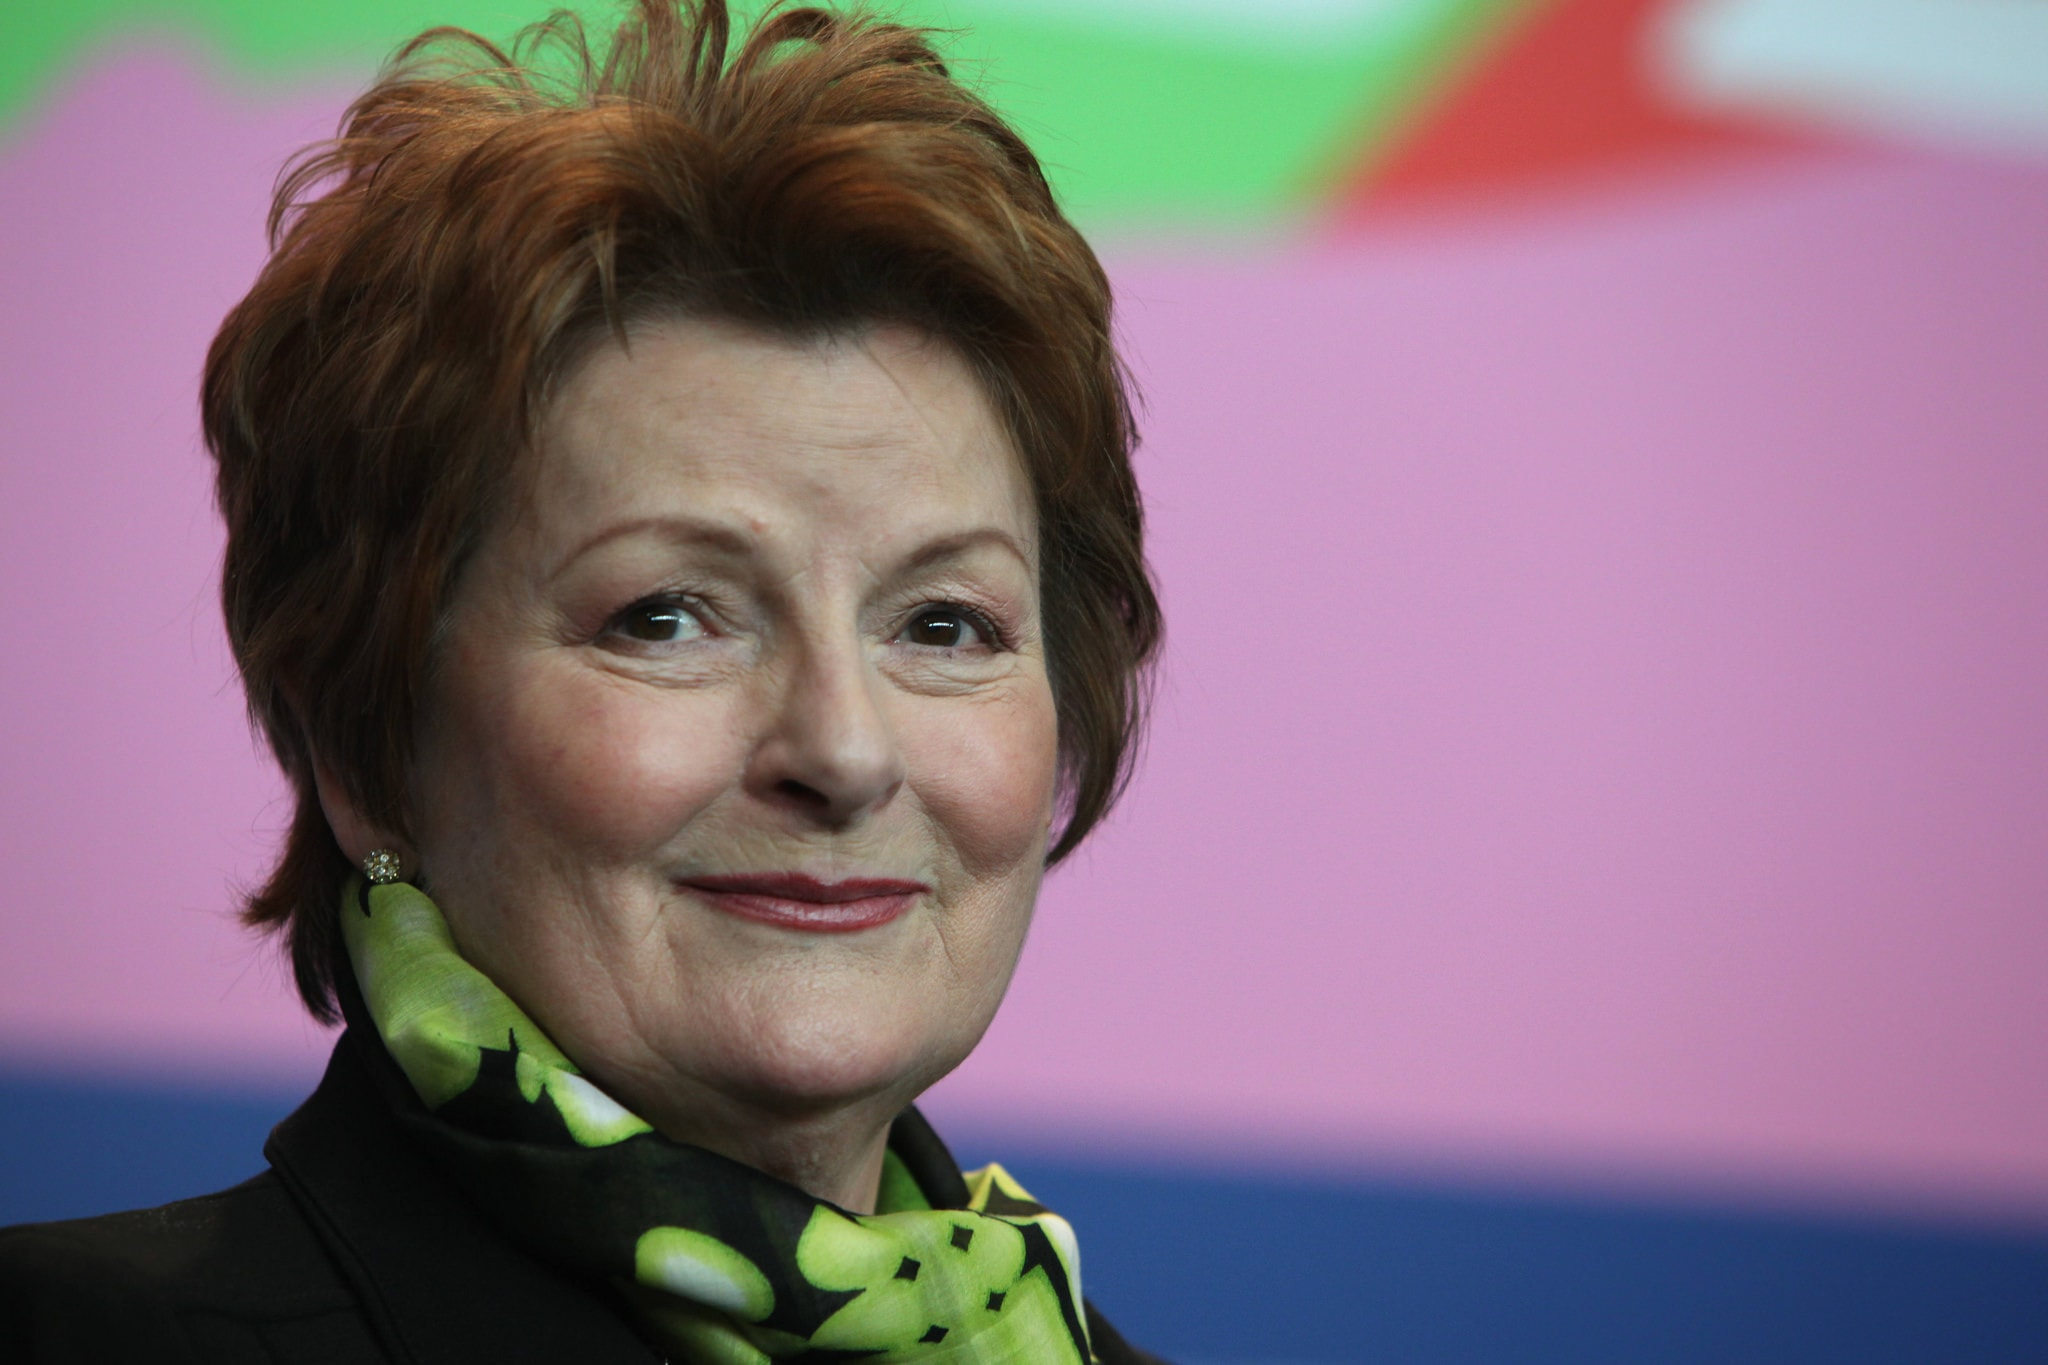 Brenda Blethyn (born 1946) nudes (98 photo), Tits, Bikini, Instagram, butt 2015